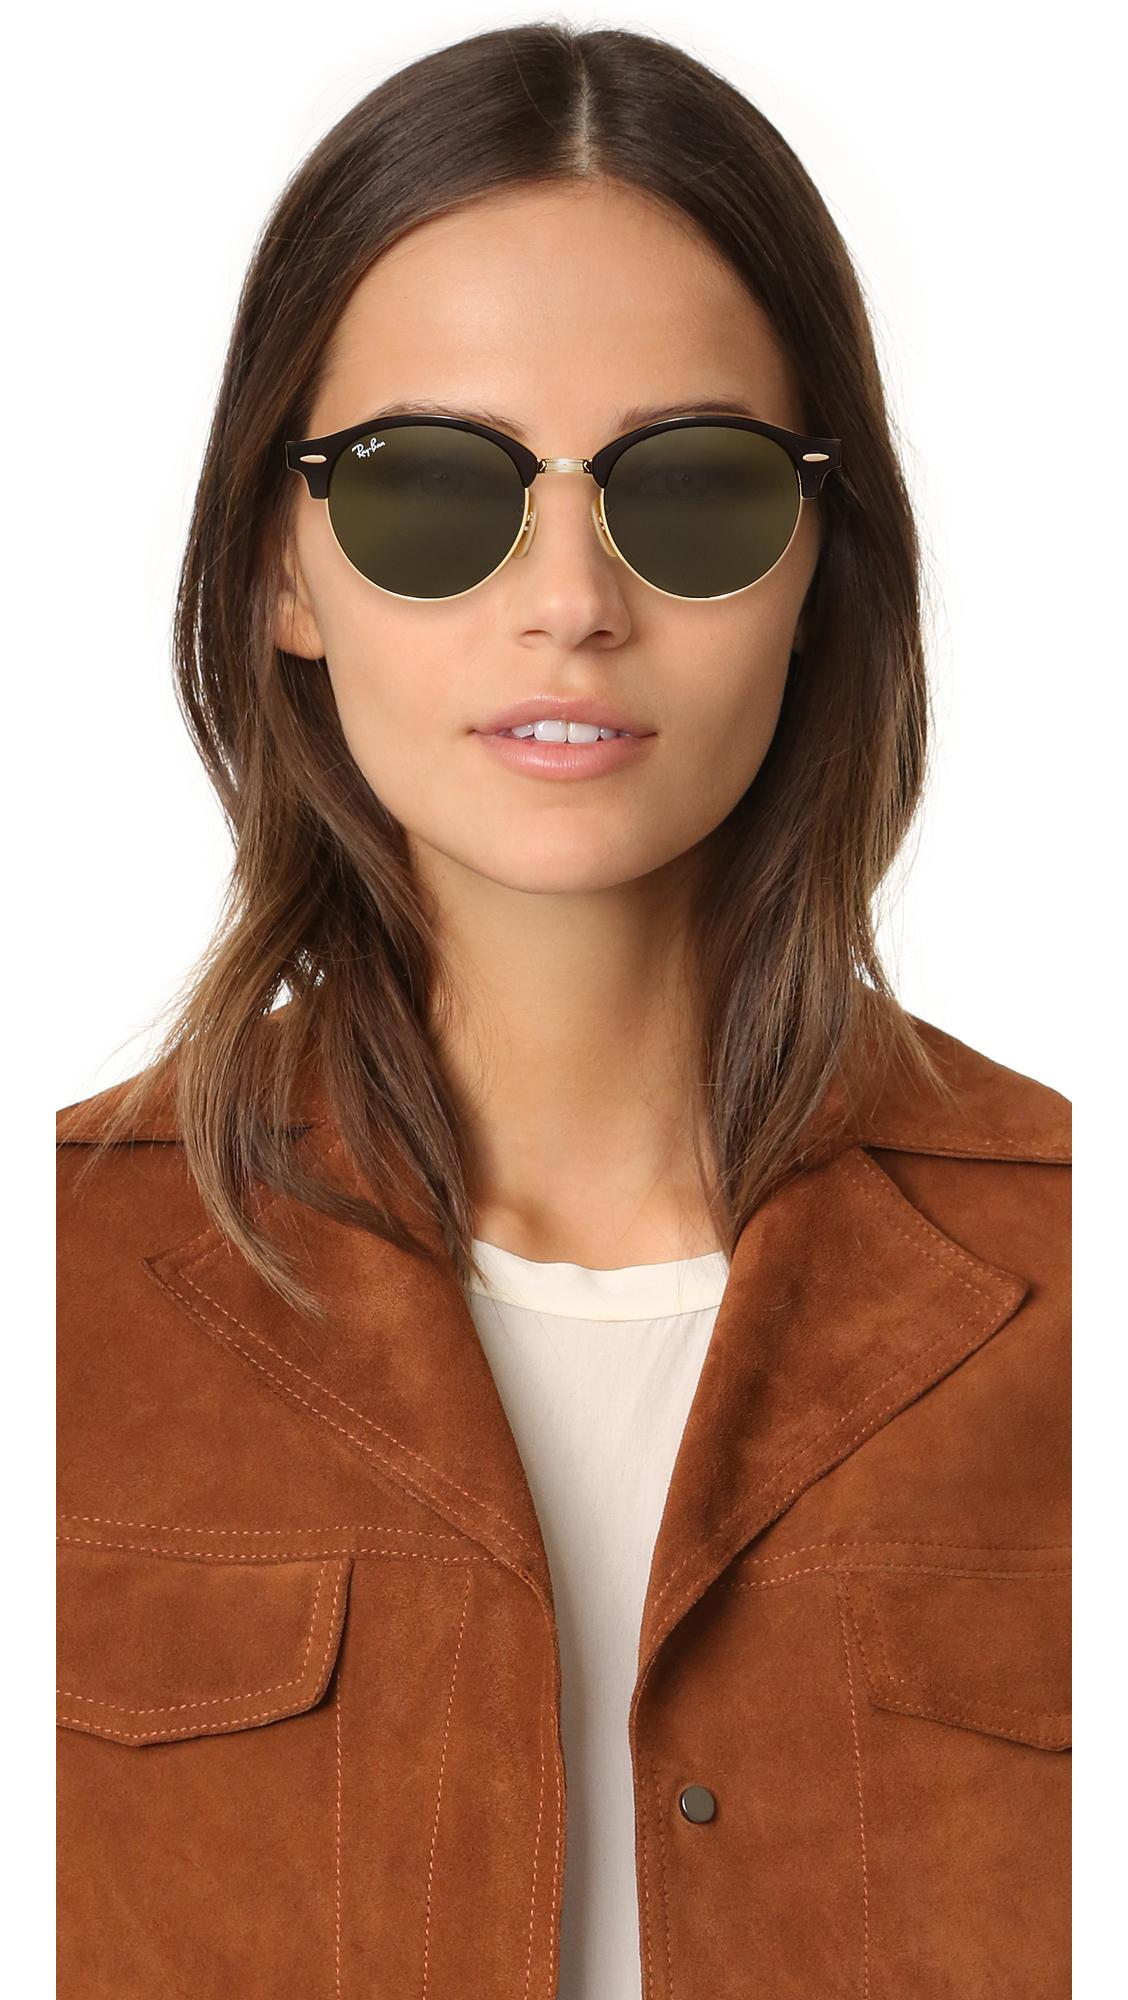 9e61c48007 Ray-Ban - Green Rb4246 Clubmaster Round Sunglasses - Lyst. View fullscreen